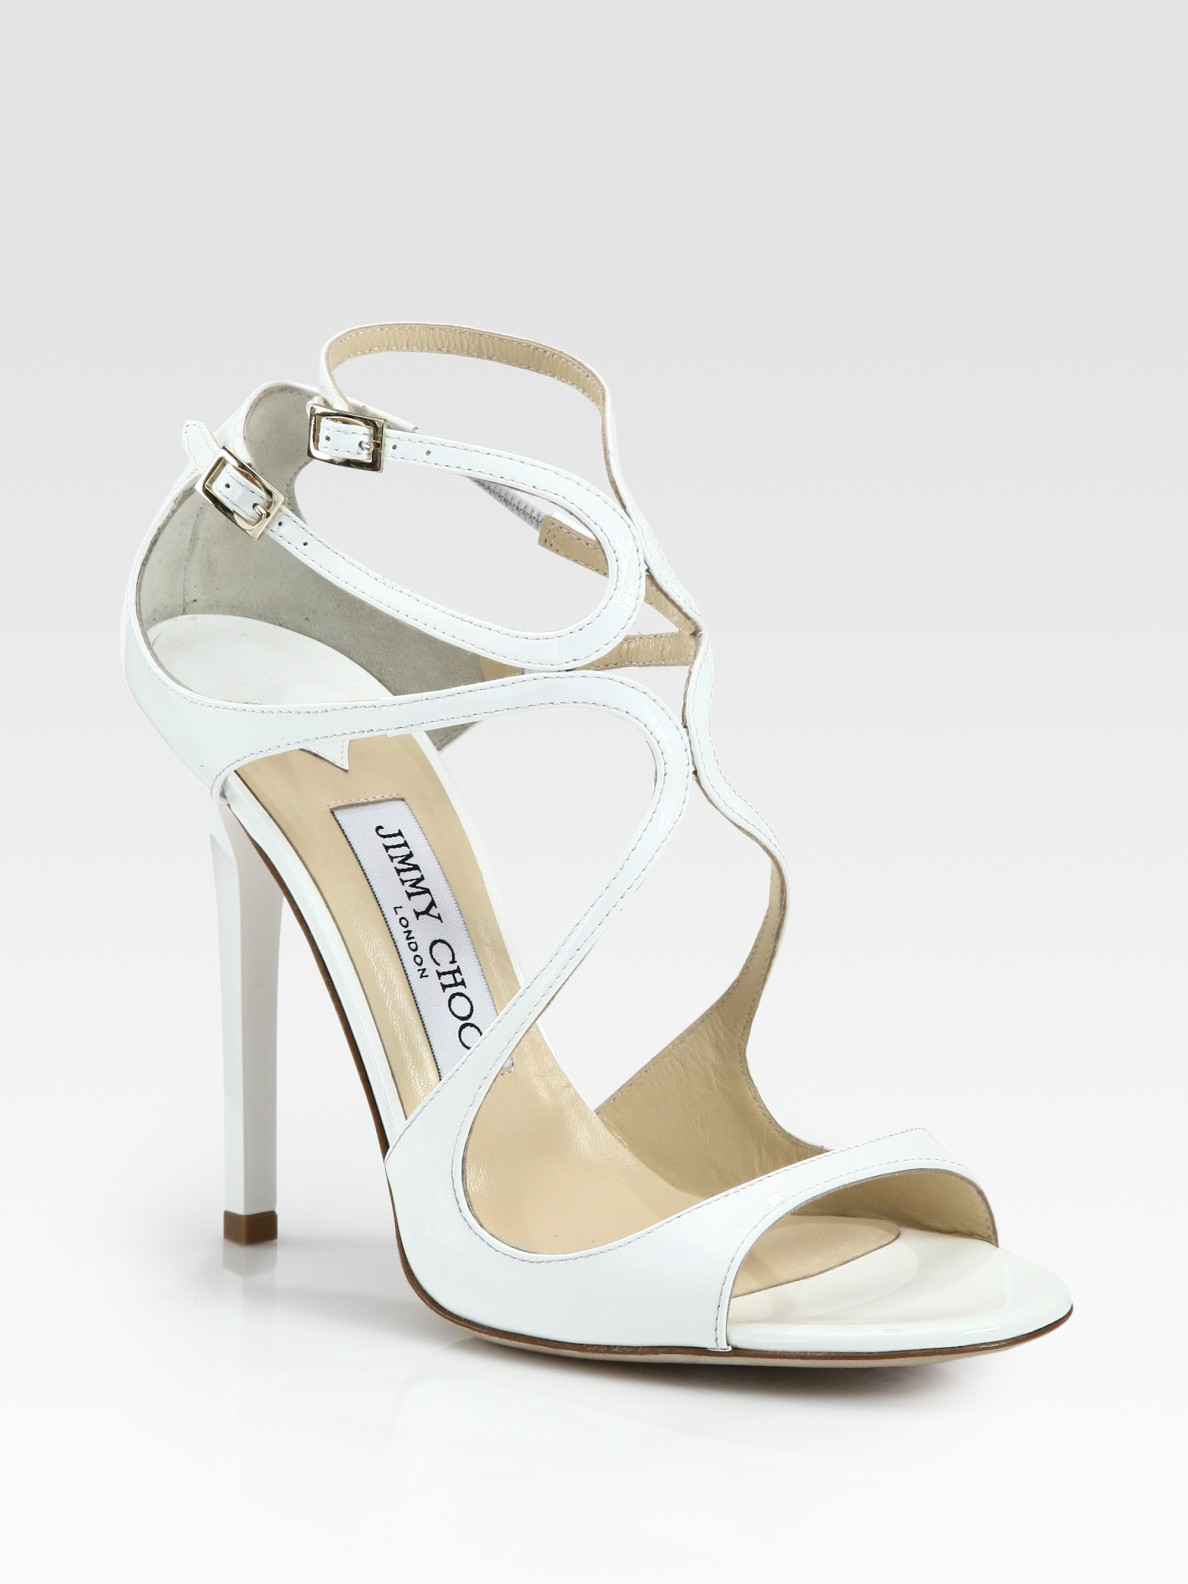 5a820c46a0f czech lyst jimmy choo lance patent leather sandals in white f69df aaa82